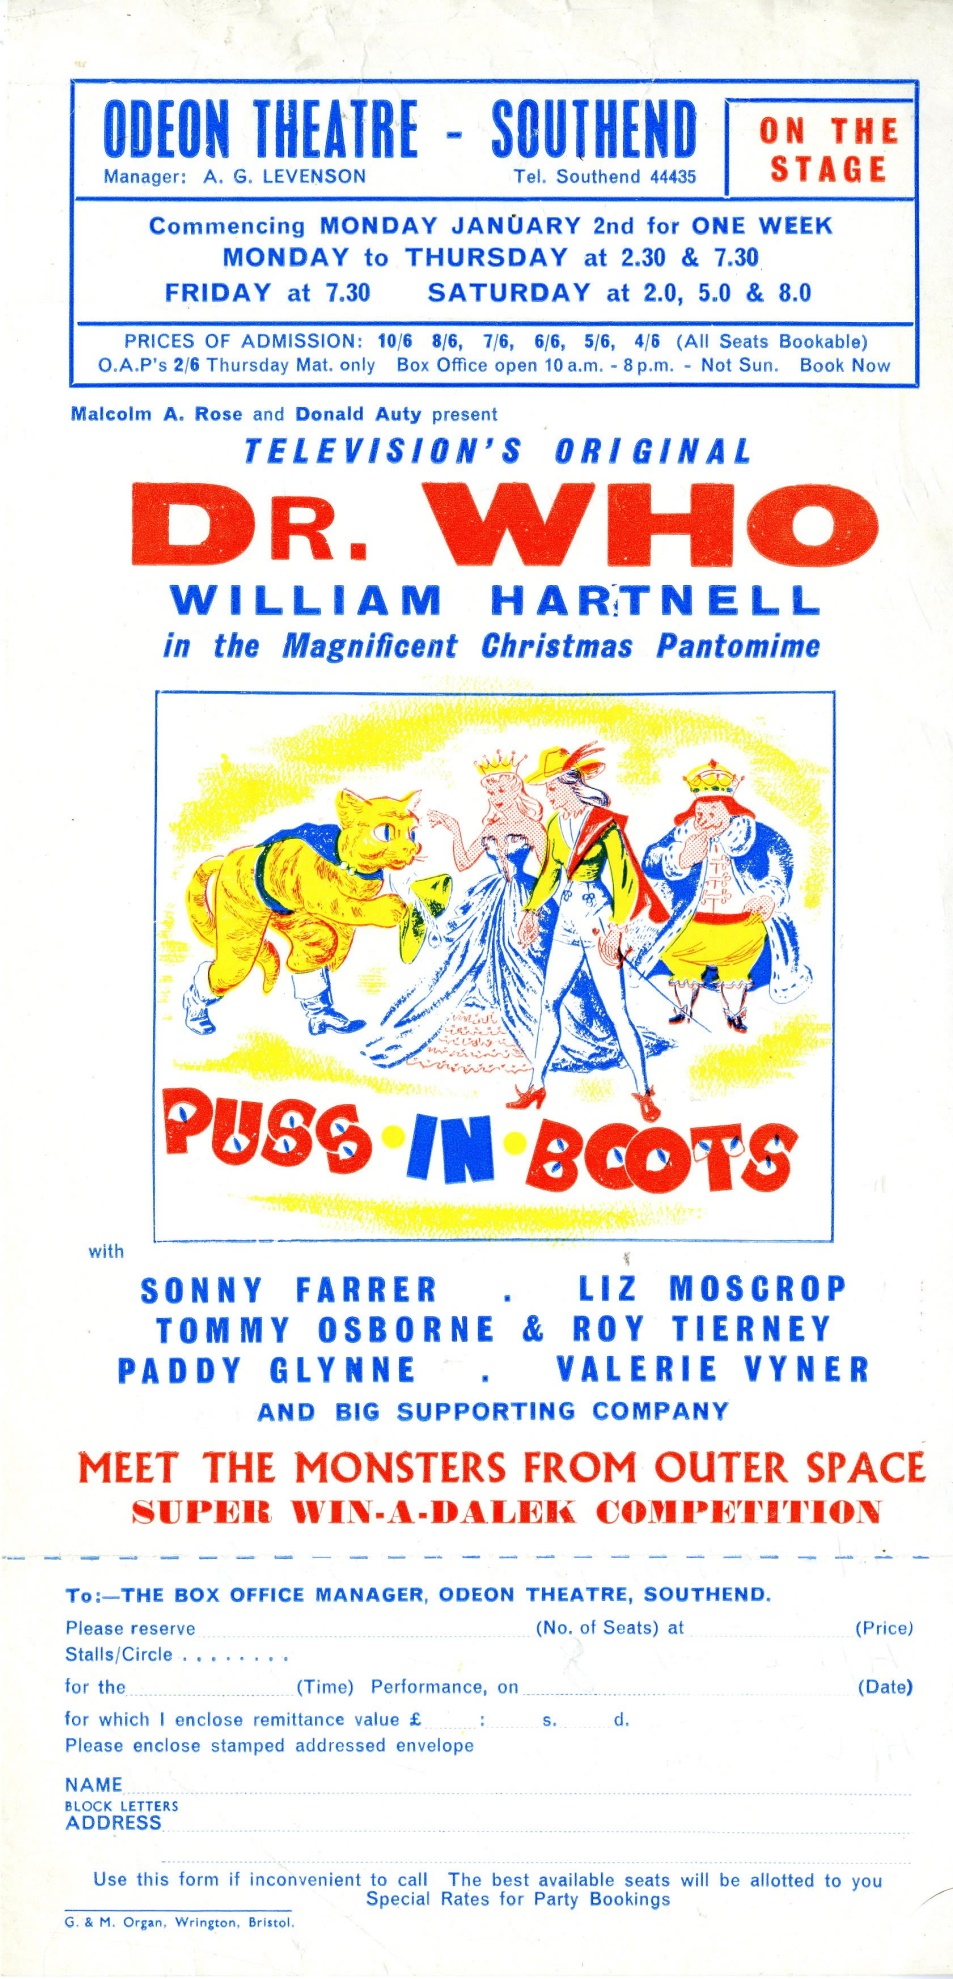 Handbill for the Pantomime, Puss in Boots, starring William Hartnell